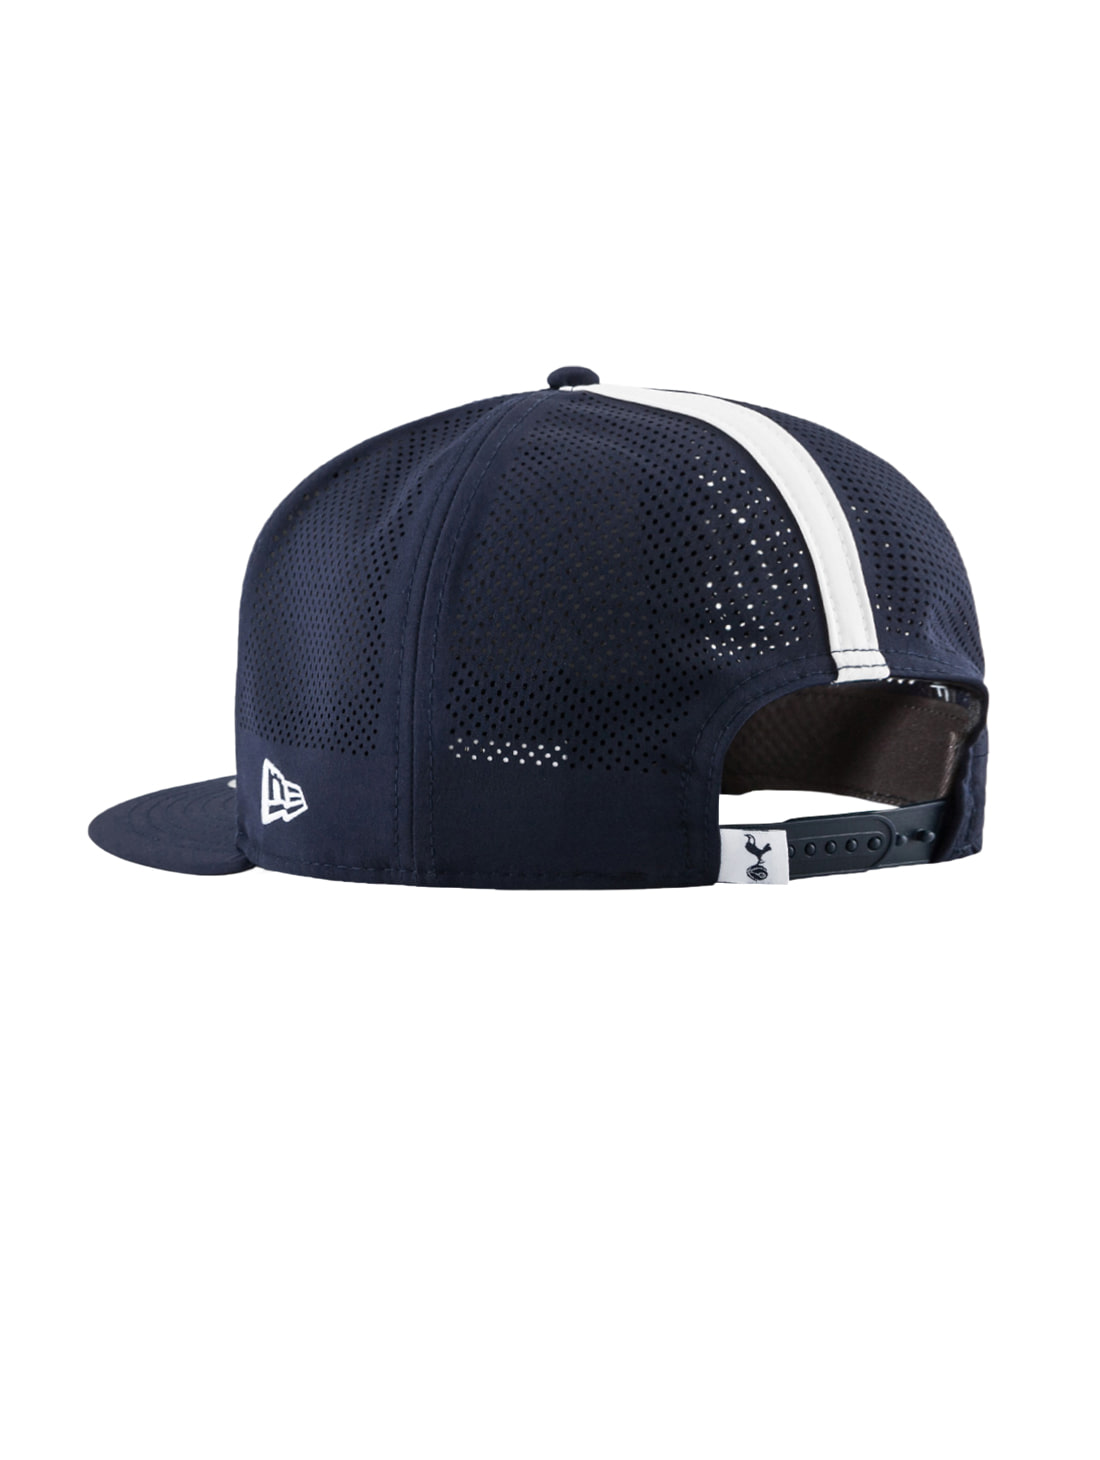 GOALSTUDIO TOTTENHAM PERFORATED MESH SNAPBACK - NAVY